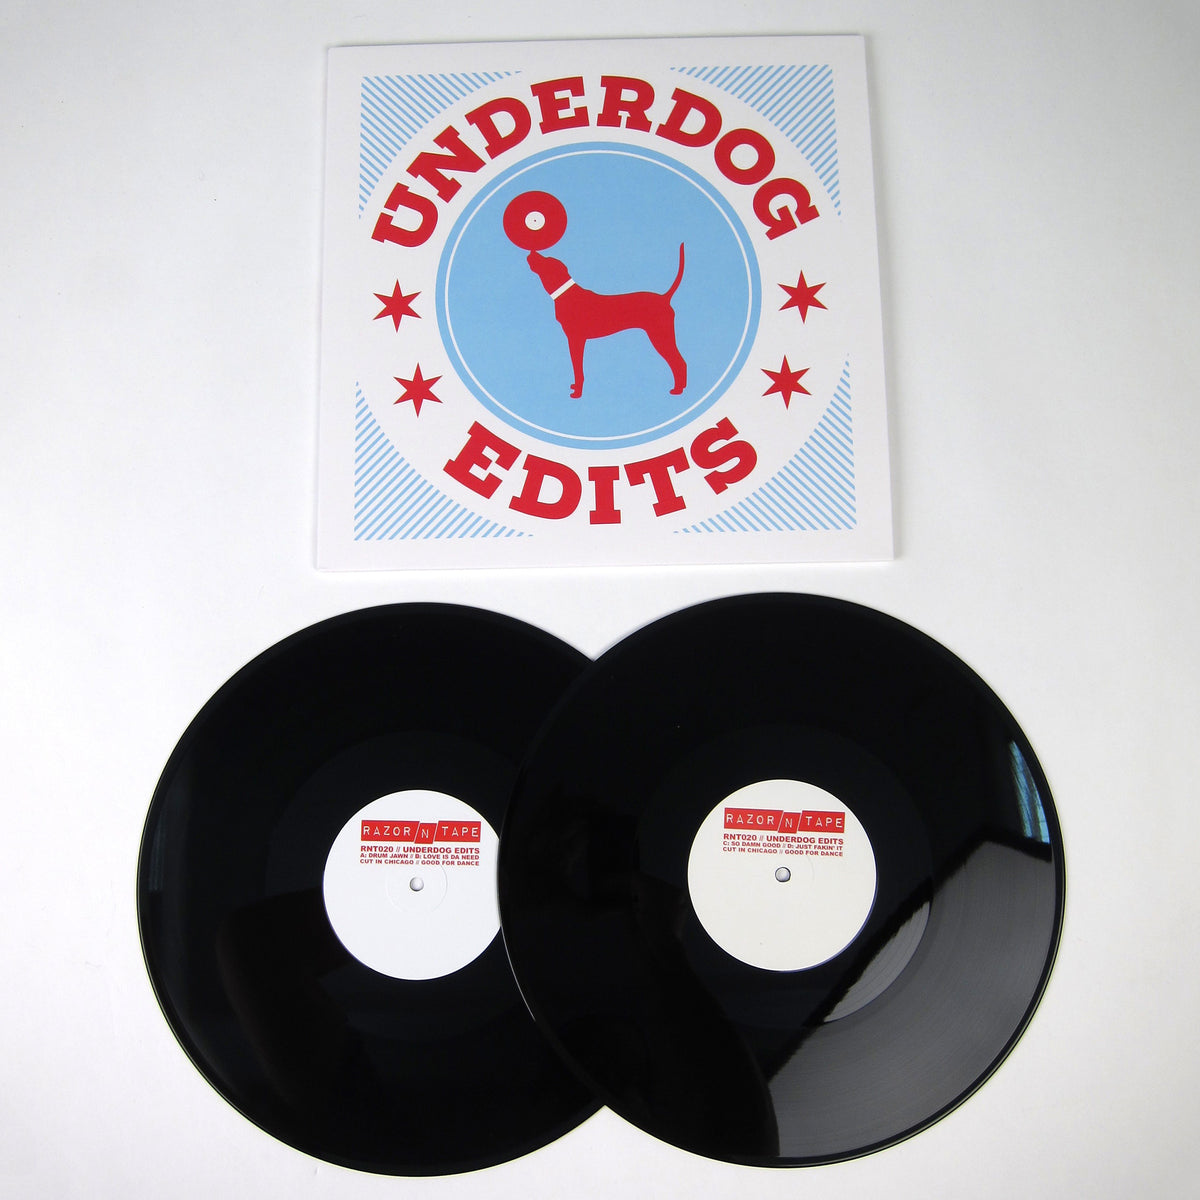 Underdog: Razor N Tape Edits (George Kranz, Randy Brown, Geraldine Hunt) Vinyl 2LP